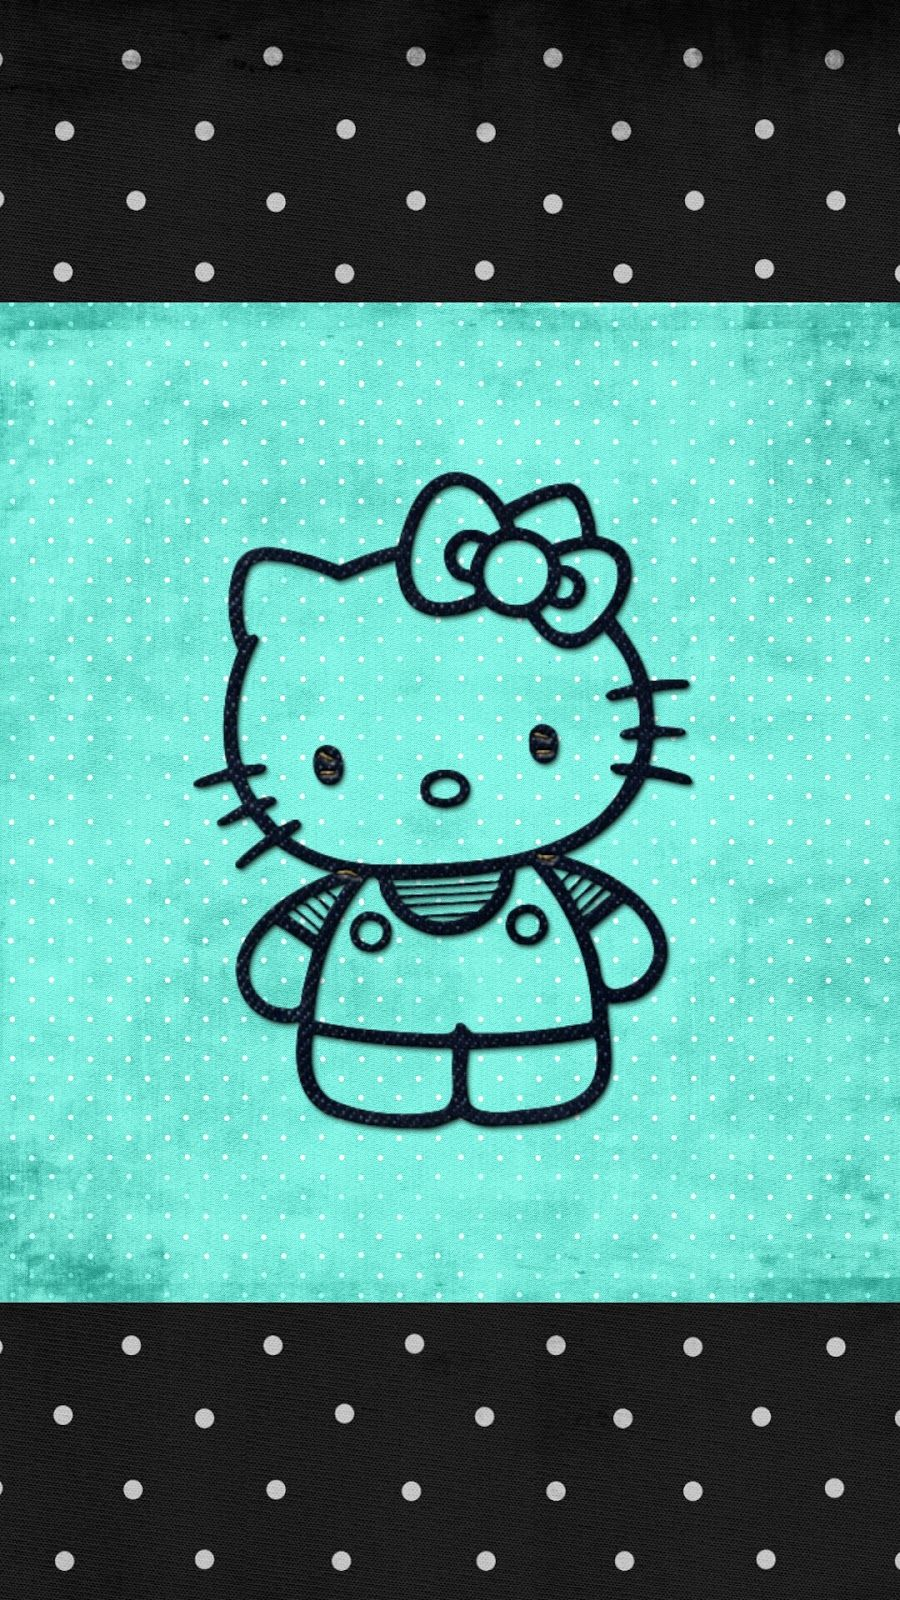 Good Wallpaper Hello Kitty Turquoise - 35d1d753a9ffd2bc2f9a4cbee23cf2ea  Gallery_92669.jpg